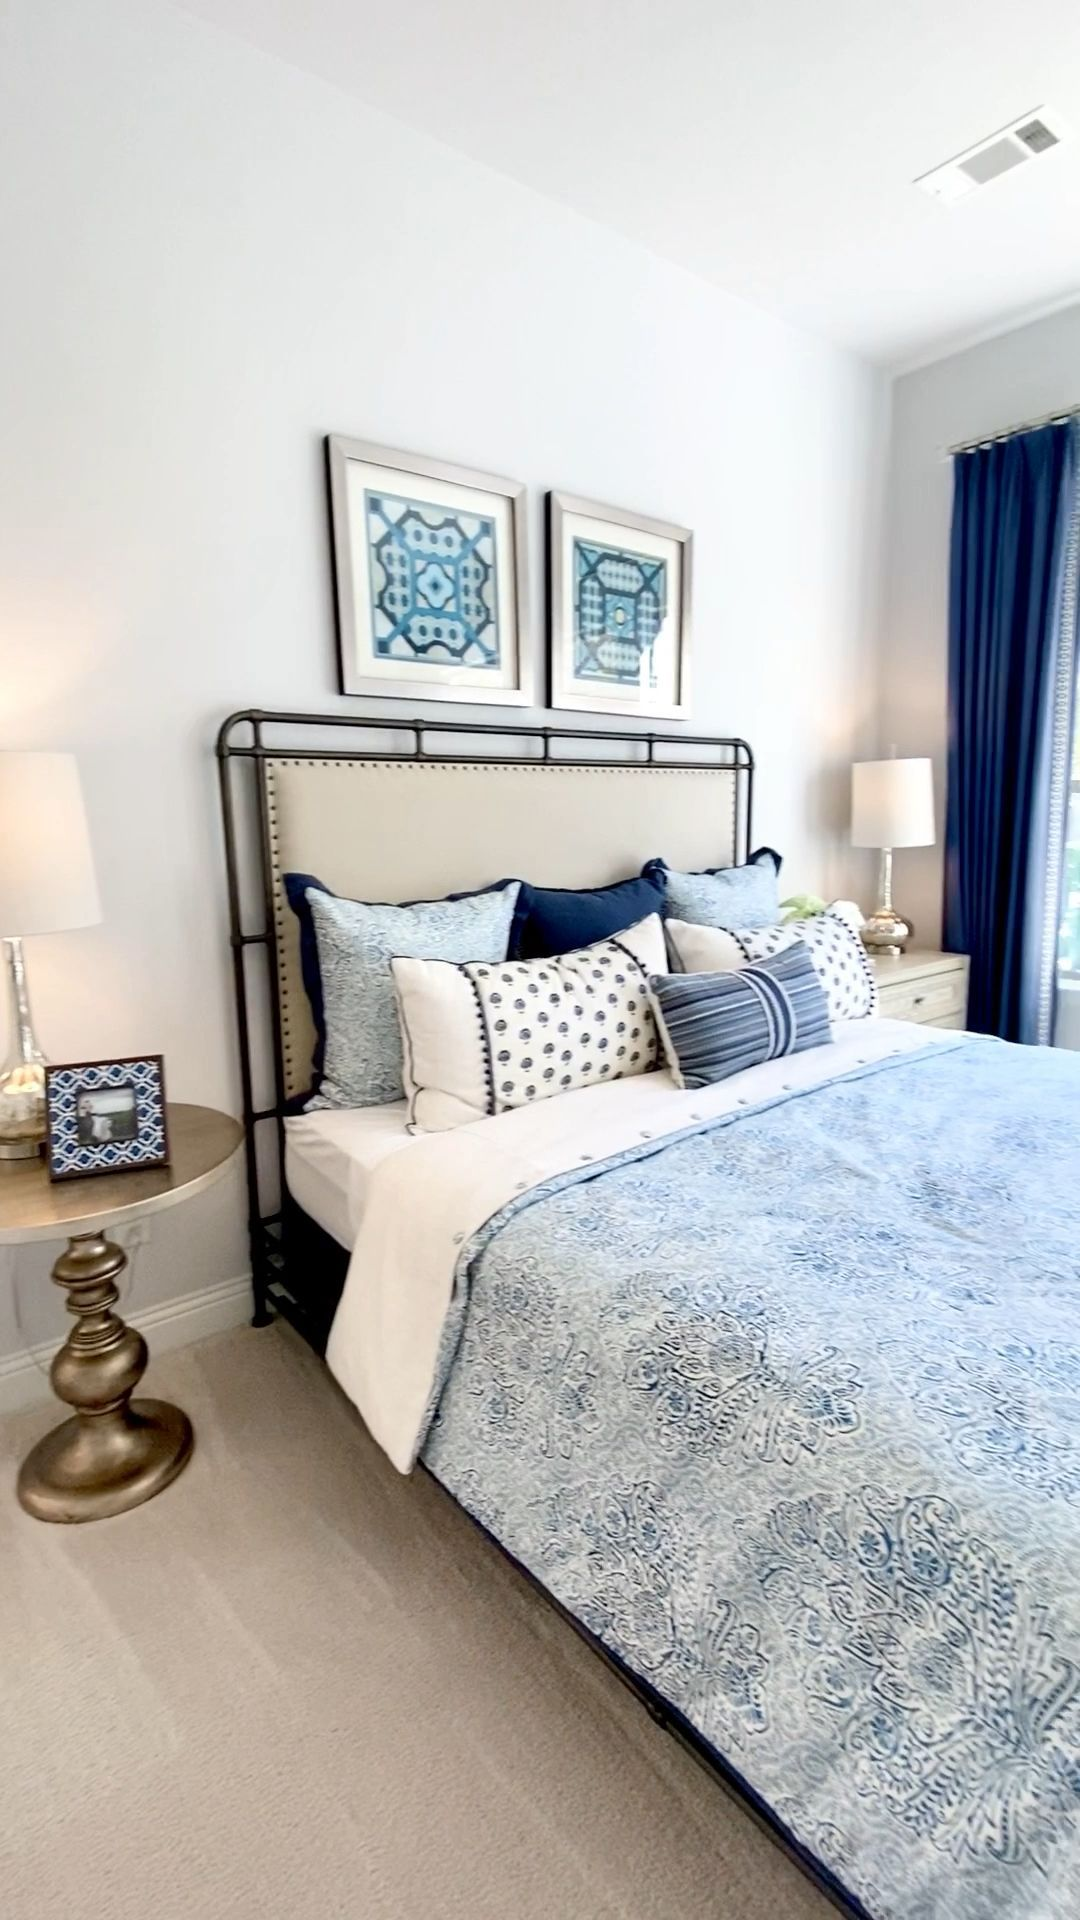 home decor videos #homedecor Master bedroom design with light and navy blue accents. Click to see more model home photos and decorating inspiration... Learn how to decorate or stage your own home... THE DECORATING COACH #decoratingideas #homestaging #bedroomideas